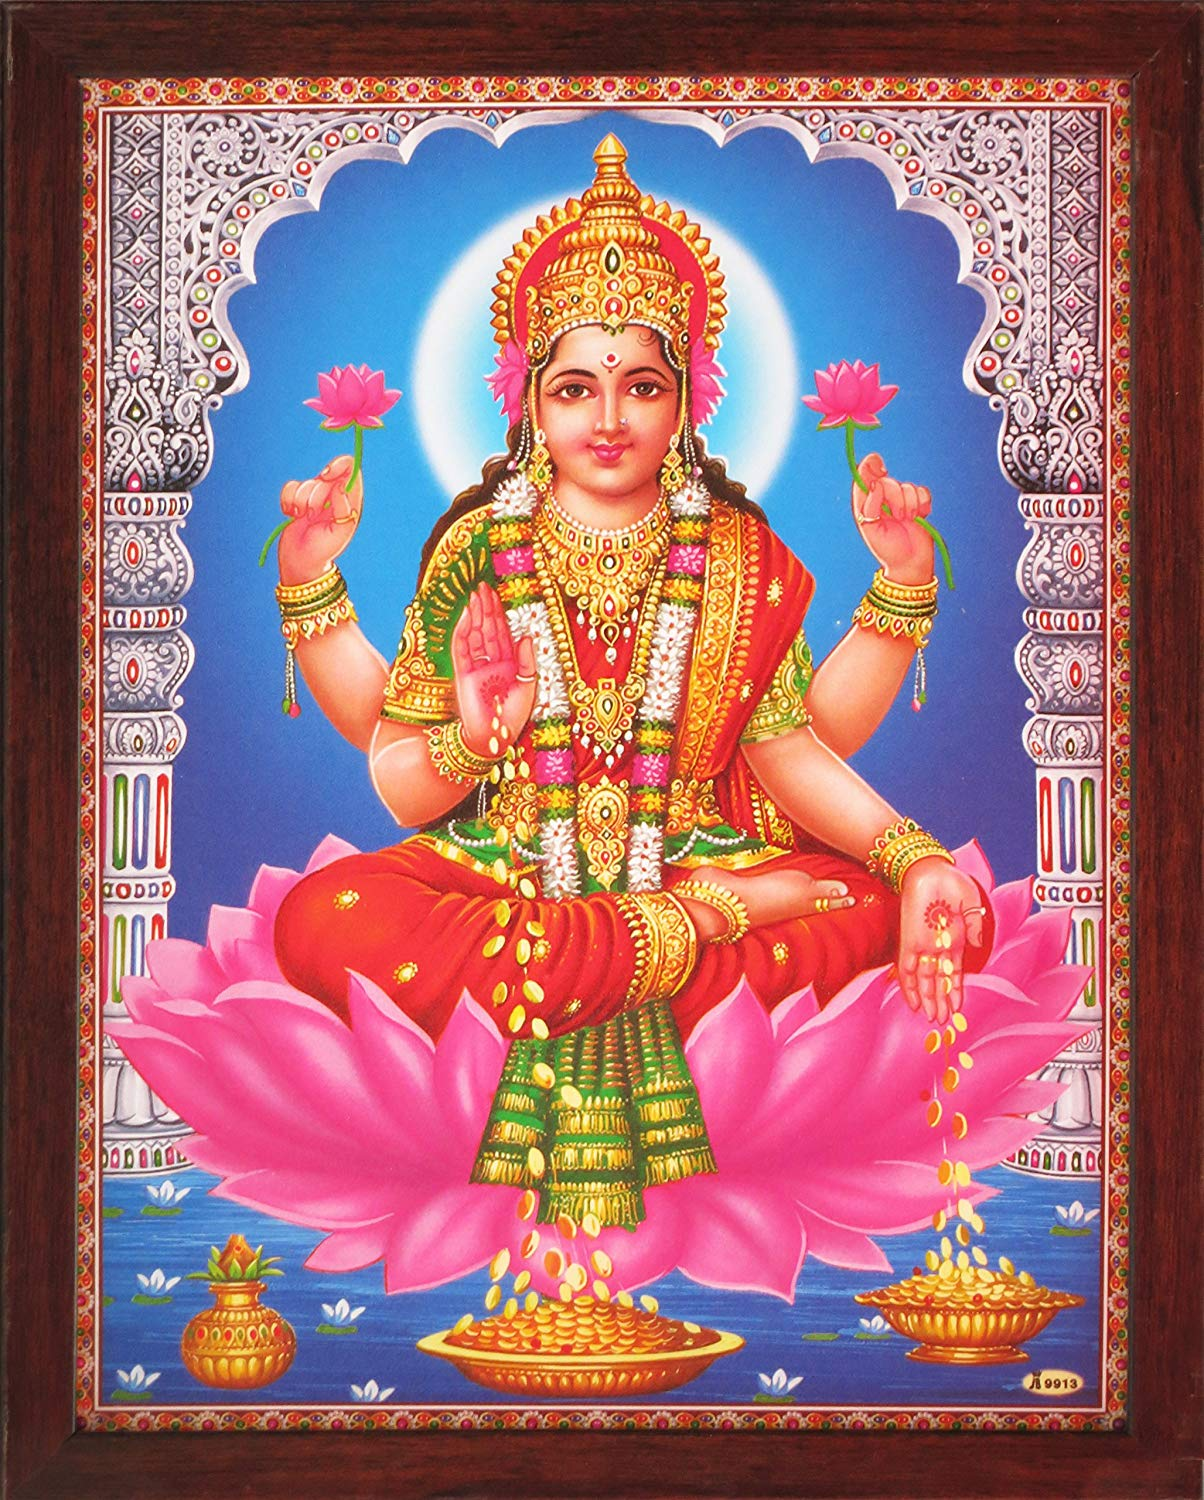 HandicraftStore Hindi Religious Goddess Maa Laxmi Showering Money, a Indian Hindu Religious Poster Painting with Frame